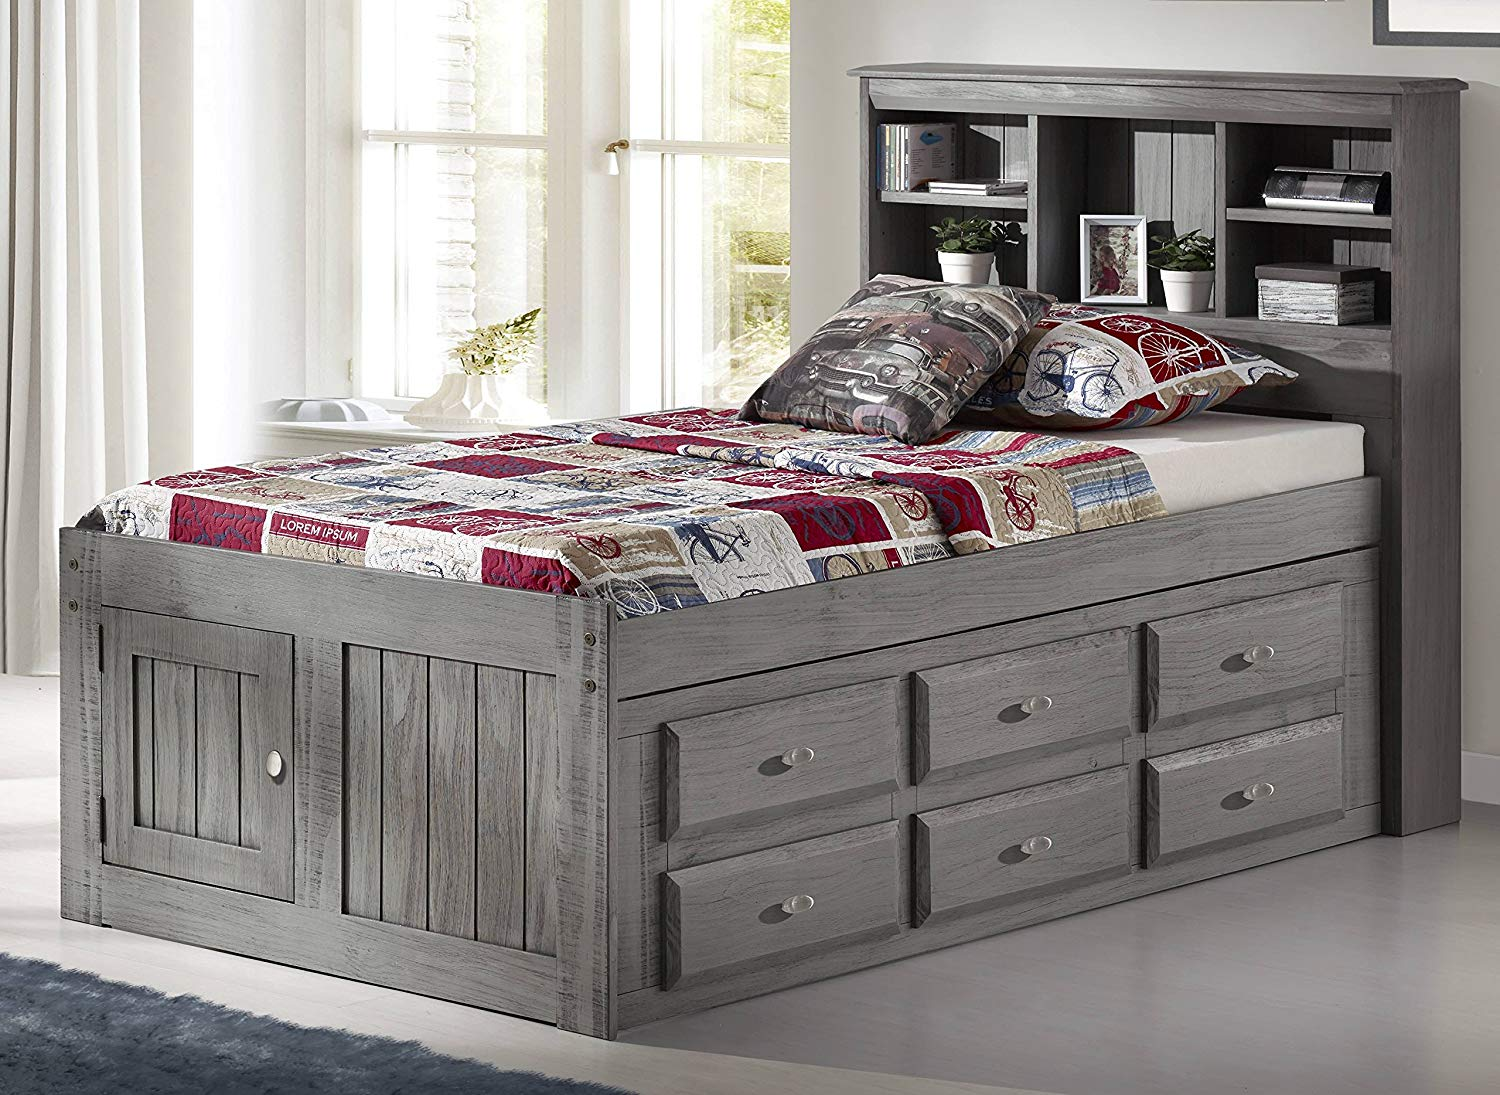 Image of: 6 Drawer Bed